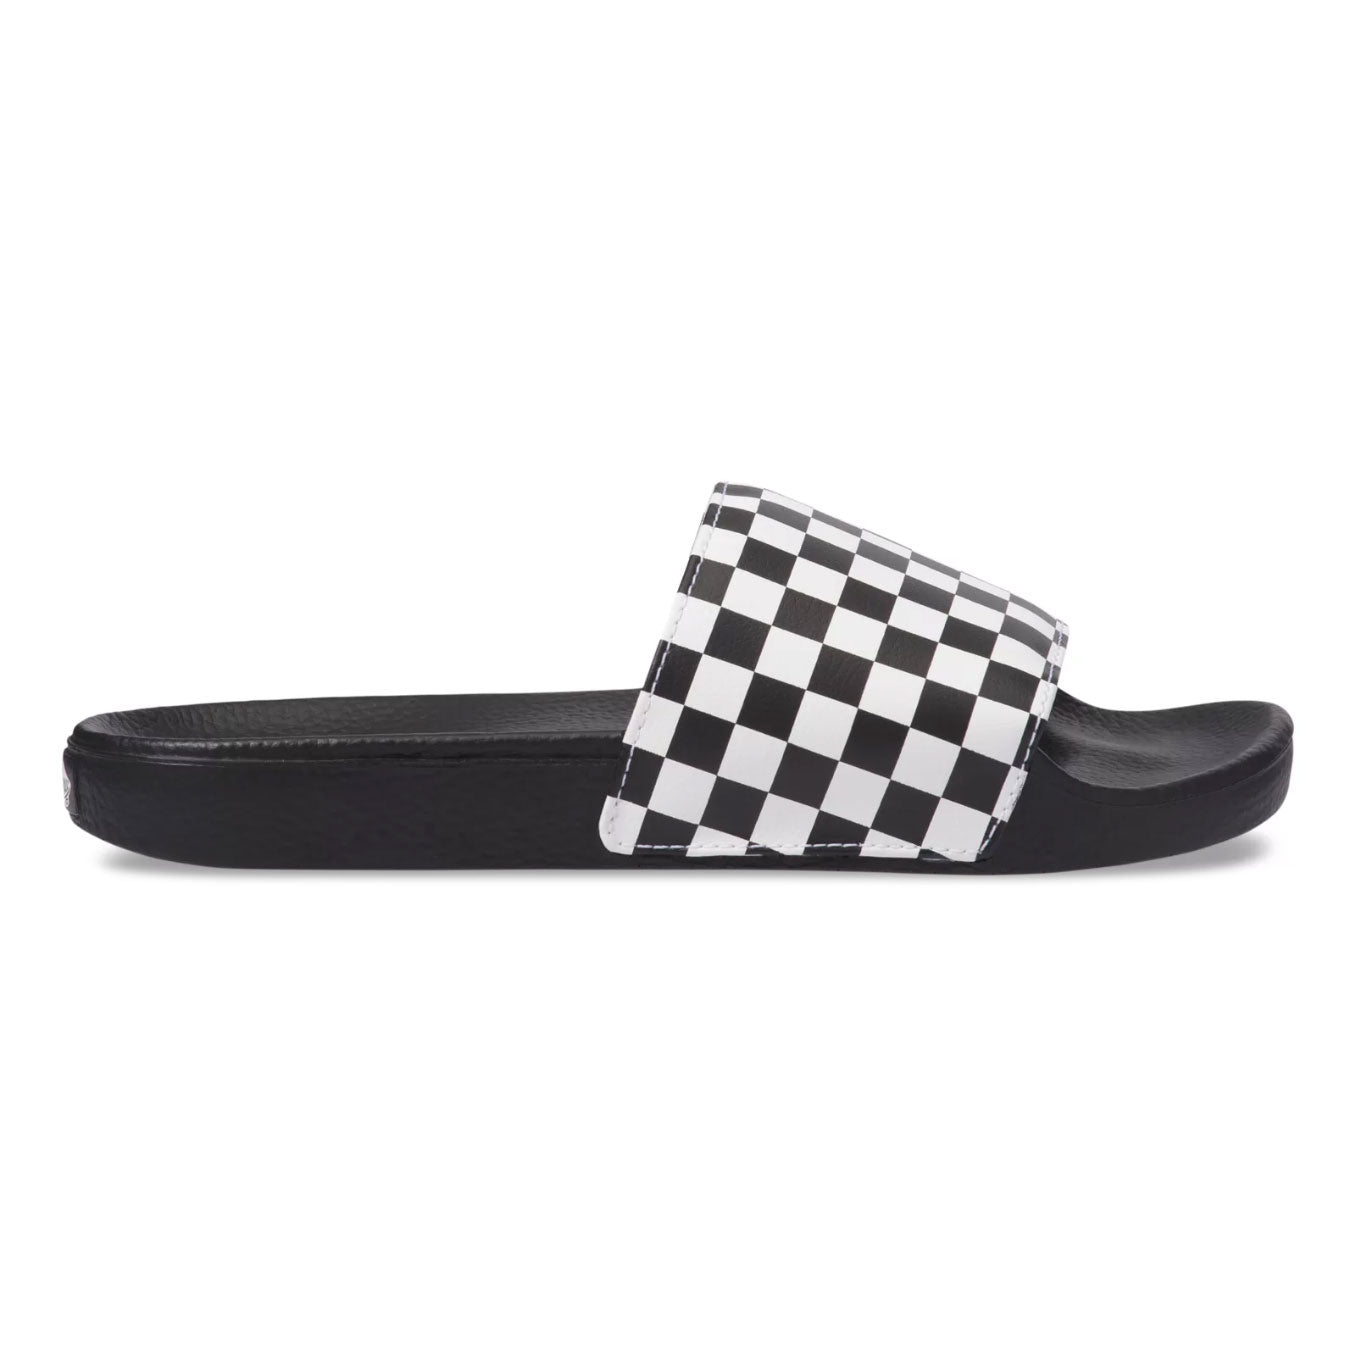 Vans Slide-On Sandal (Checkerboard)